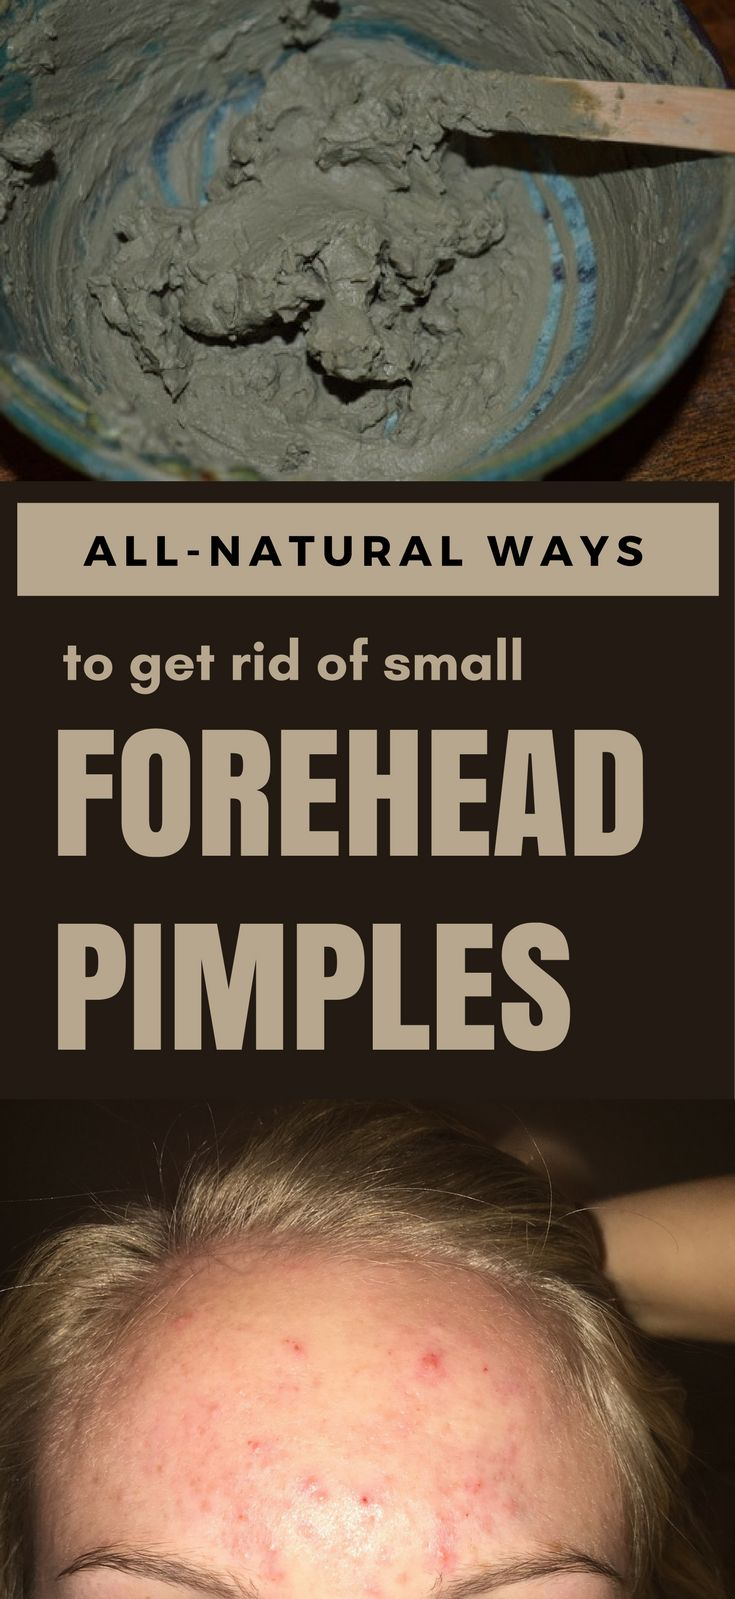 All-Natural Ways To Get Rid Of Small Forehead Pimples – 101Beauty.org